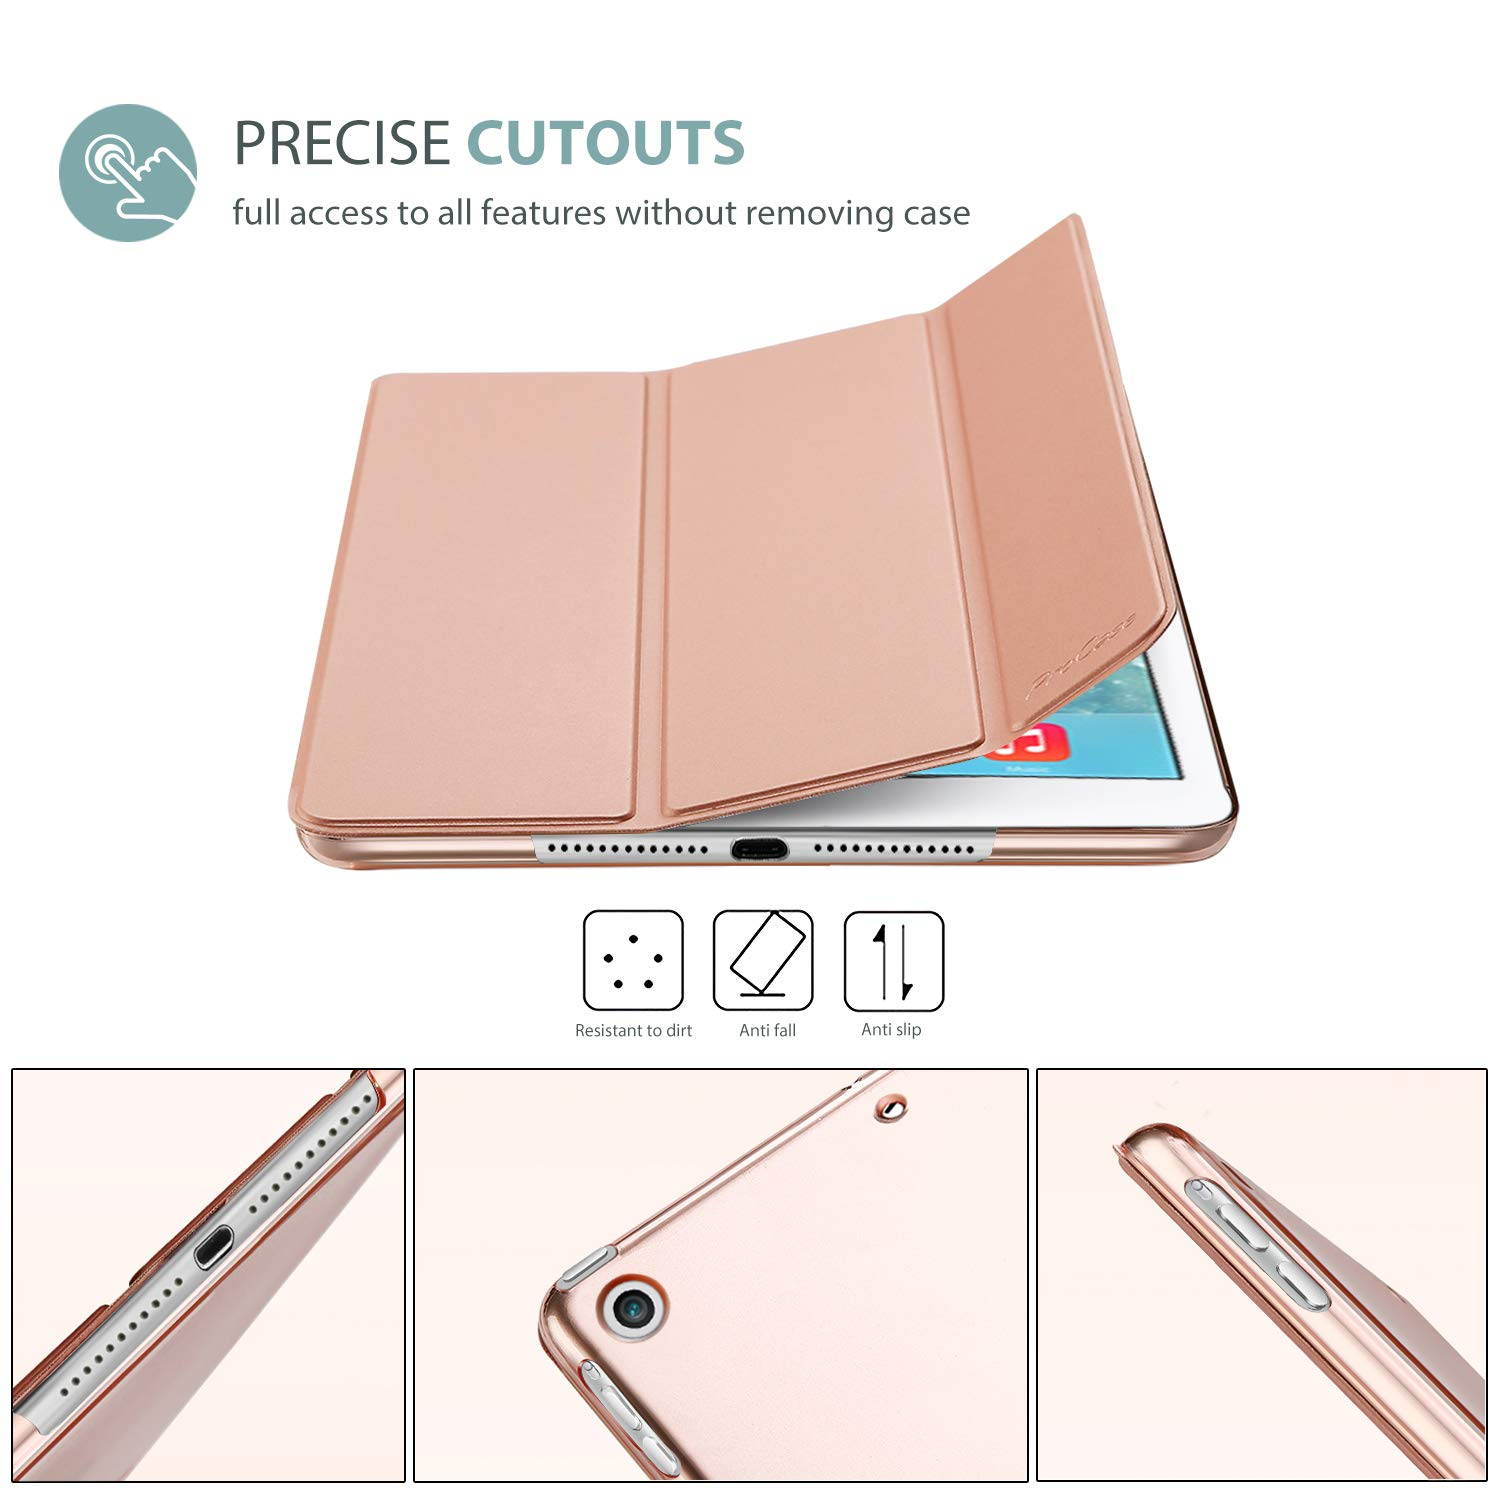 Black Ultra Slim Lightweight Stand Protective Case Shell A1474 A1475 A1476 ProCase iPad Air 1st generation Smart Case Cover for Apple iPad Air Auto Sleep Wake